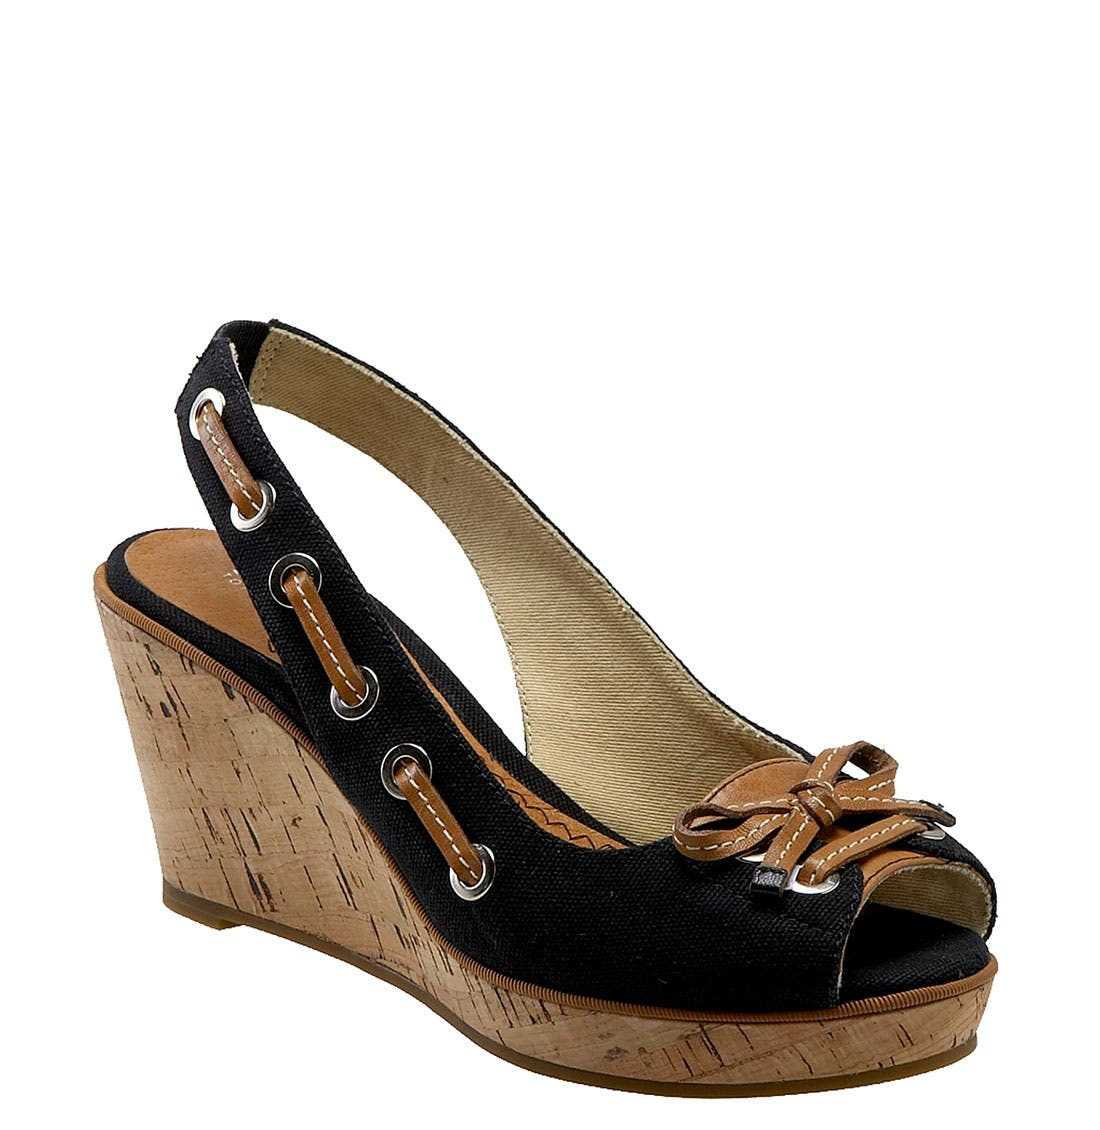 Top-Sider<sup>®</sup> 'Southport' Slingback Wedge, Main, color, 001